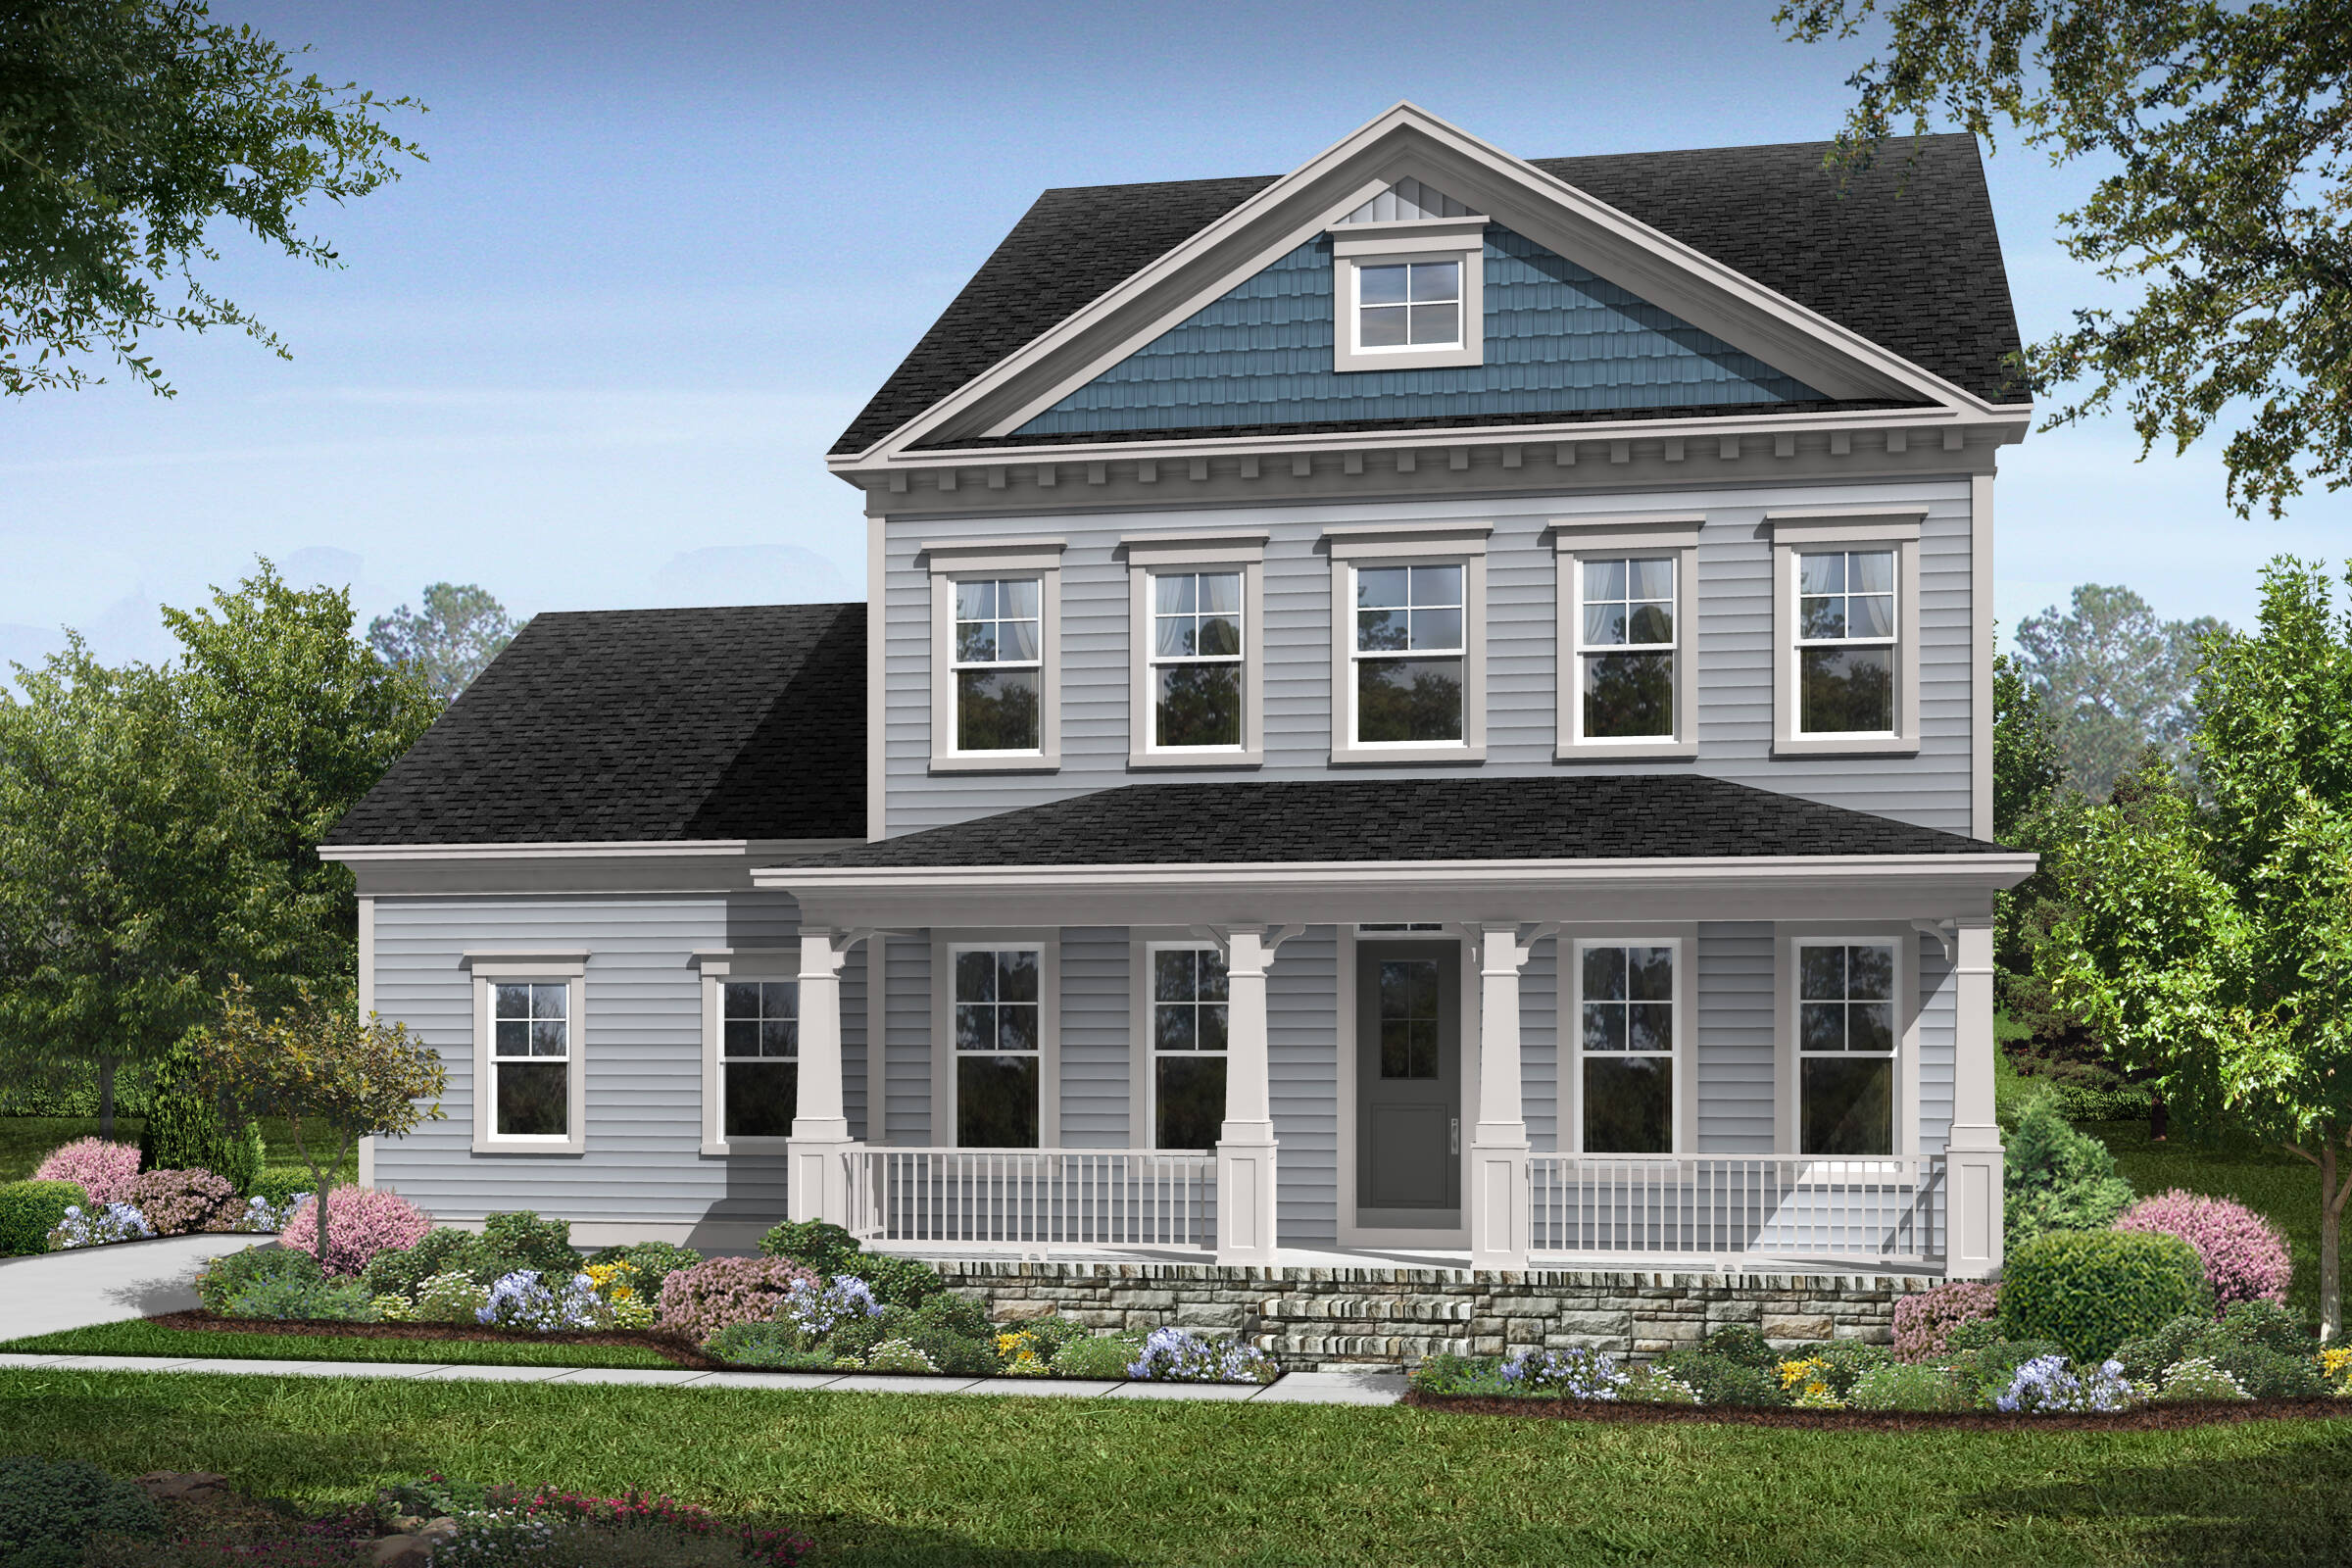 birkdale fs new homes at greens hearth collection